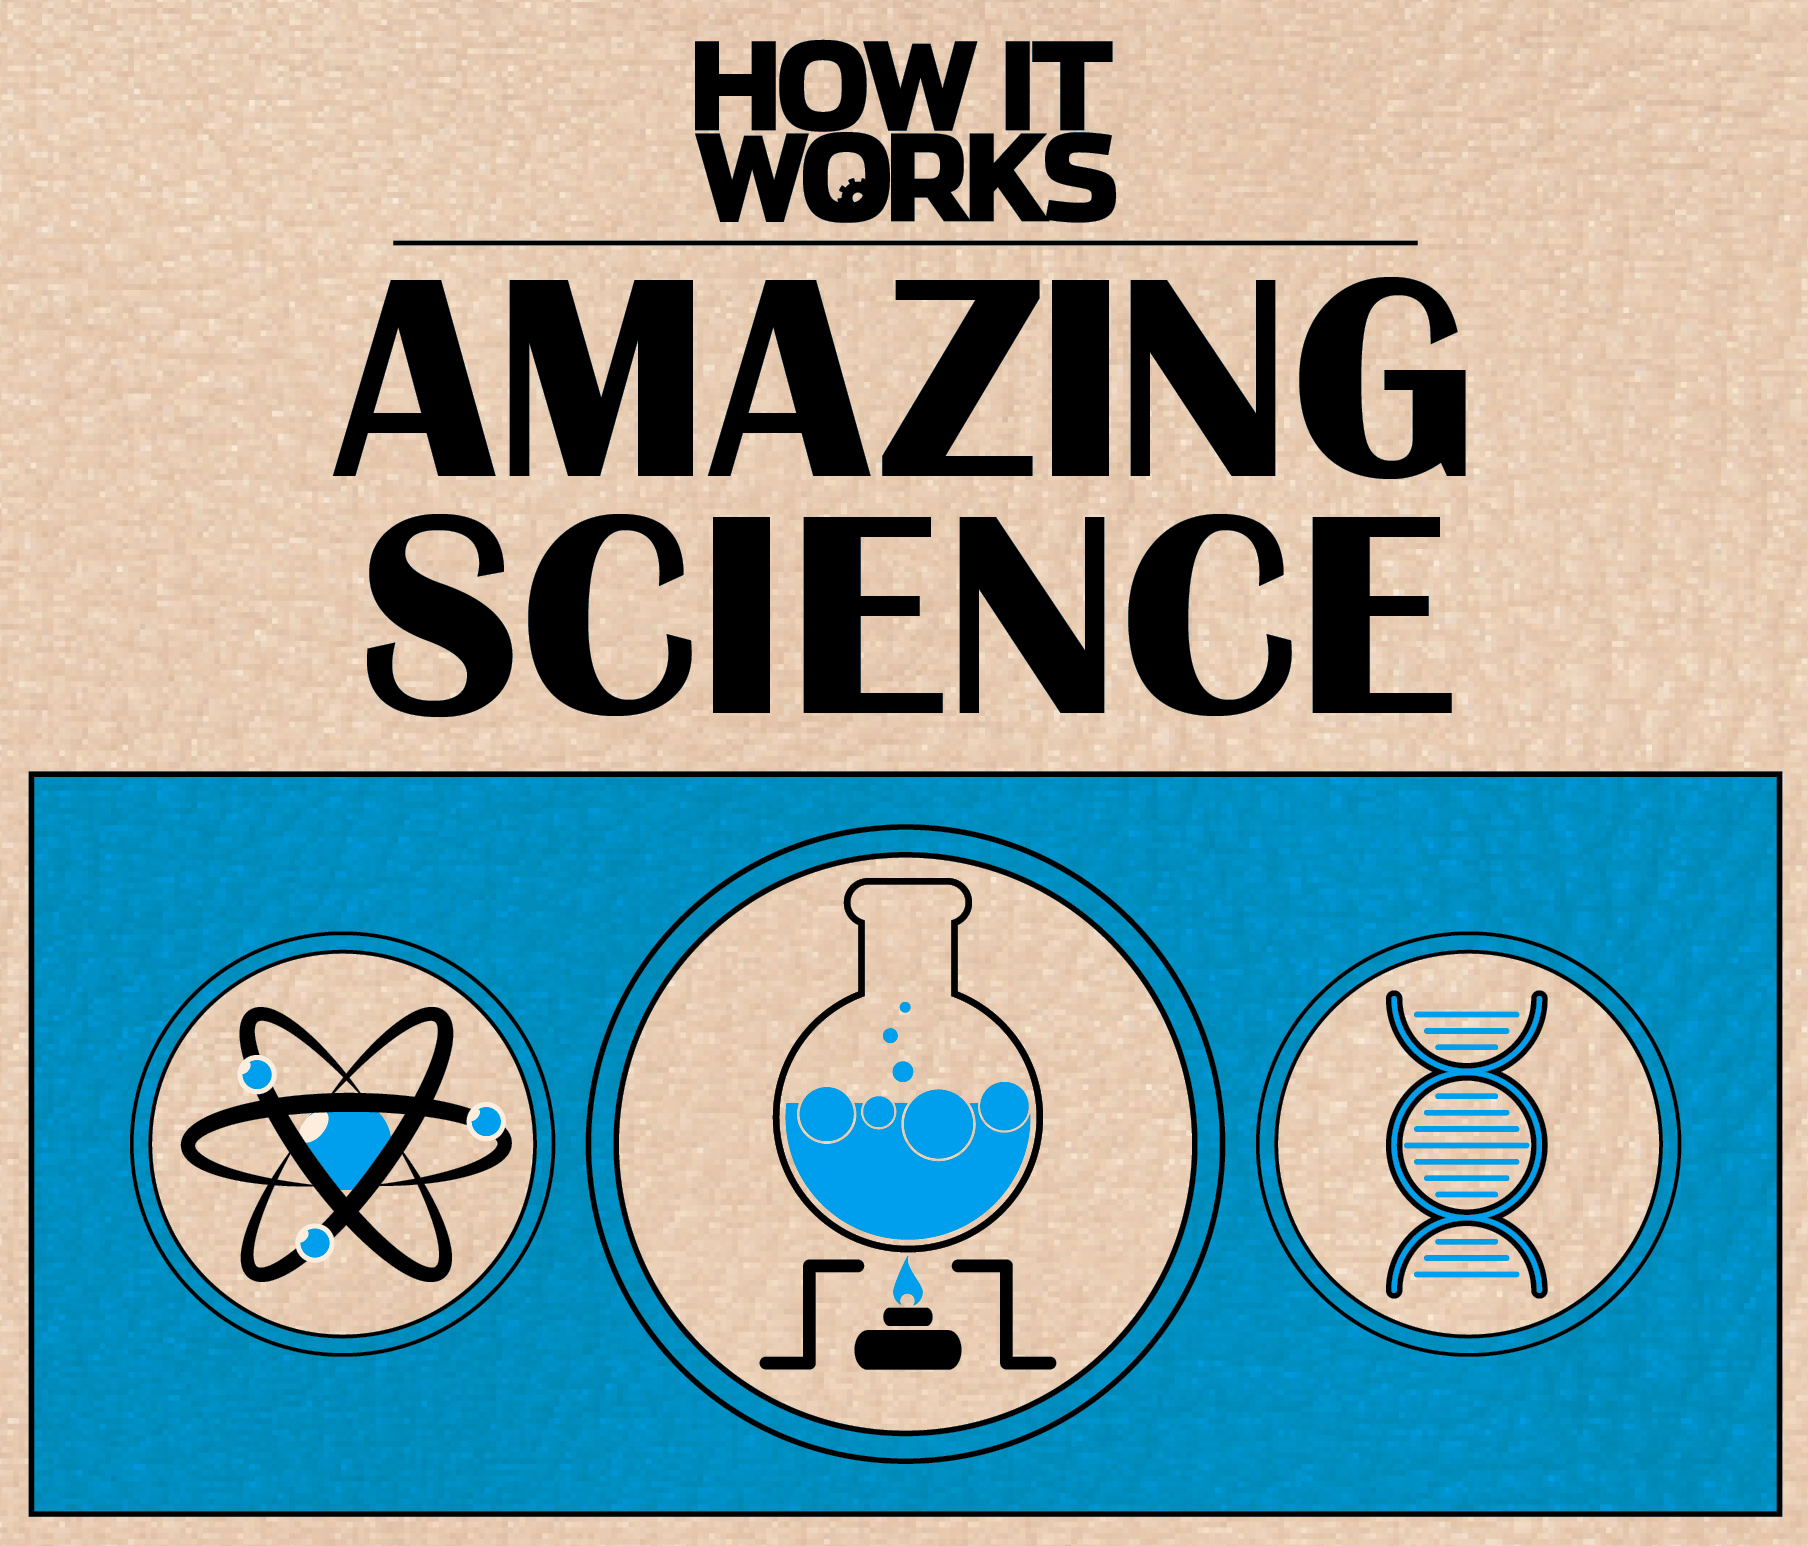 science amazing facts blow mind works magazine incredible around